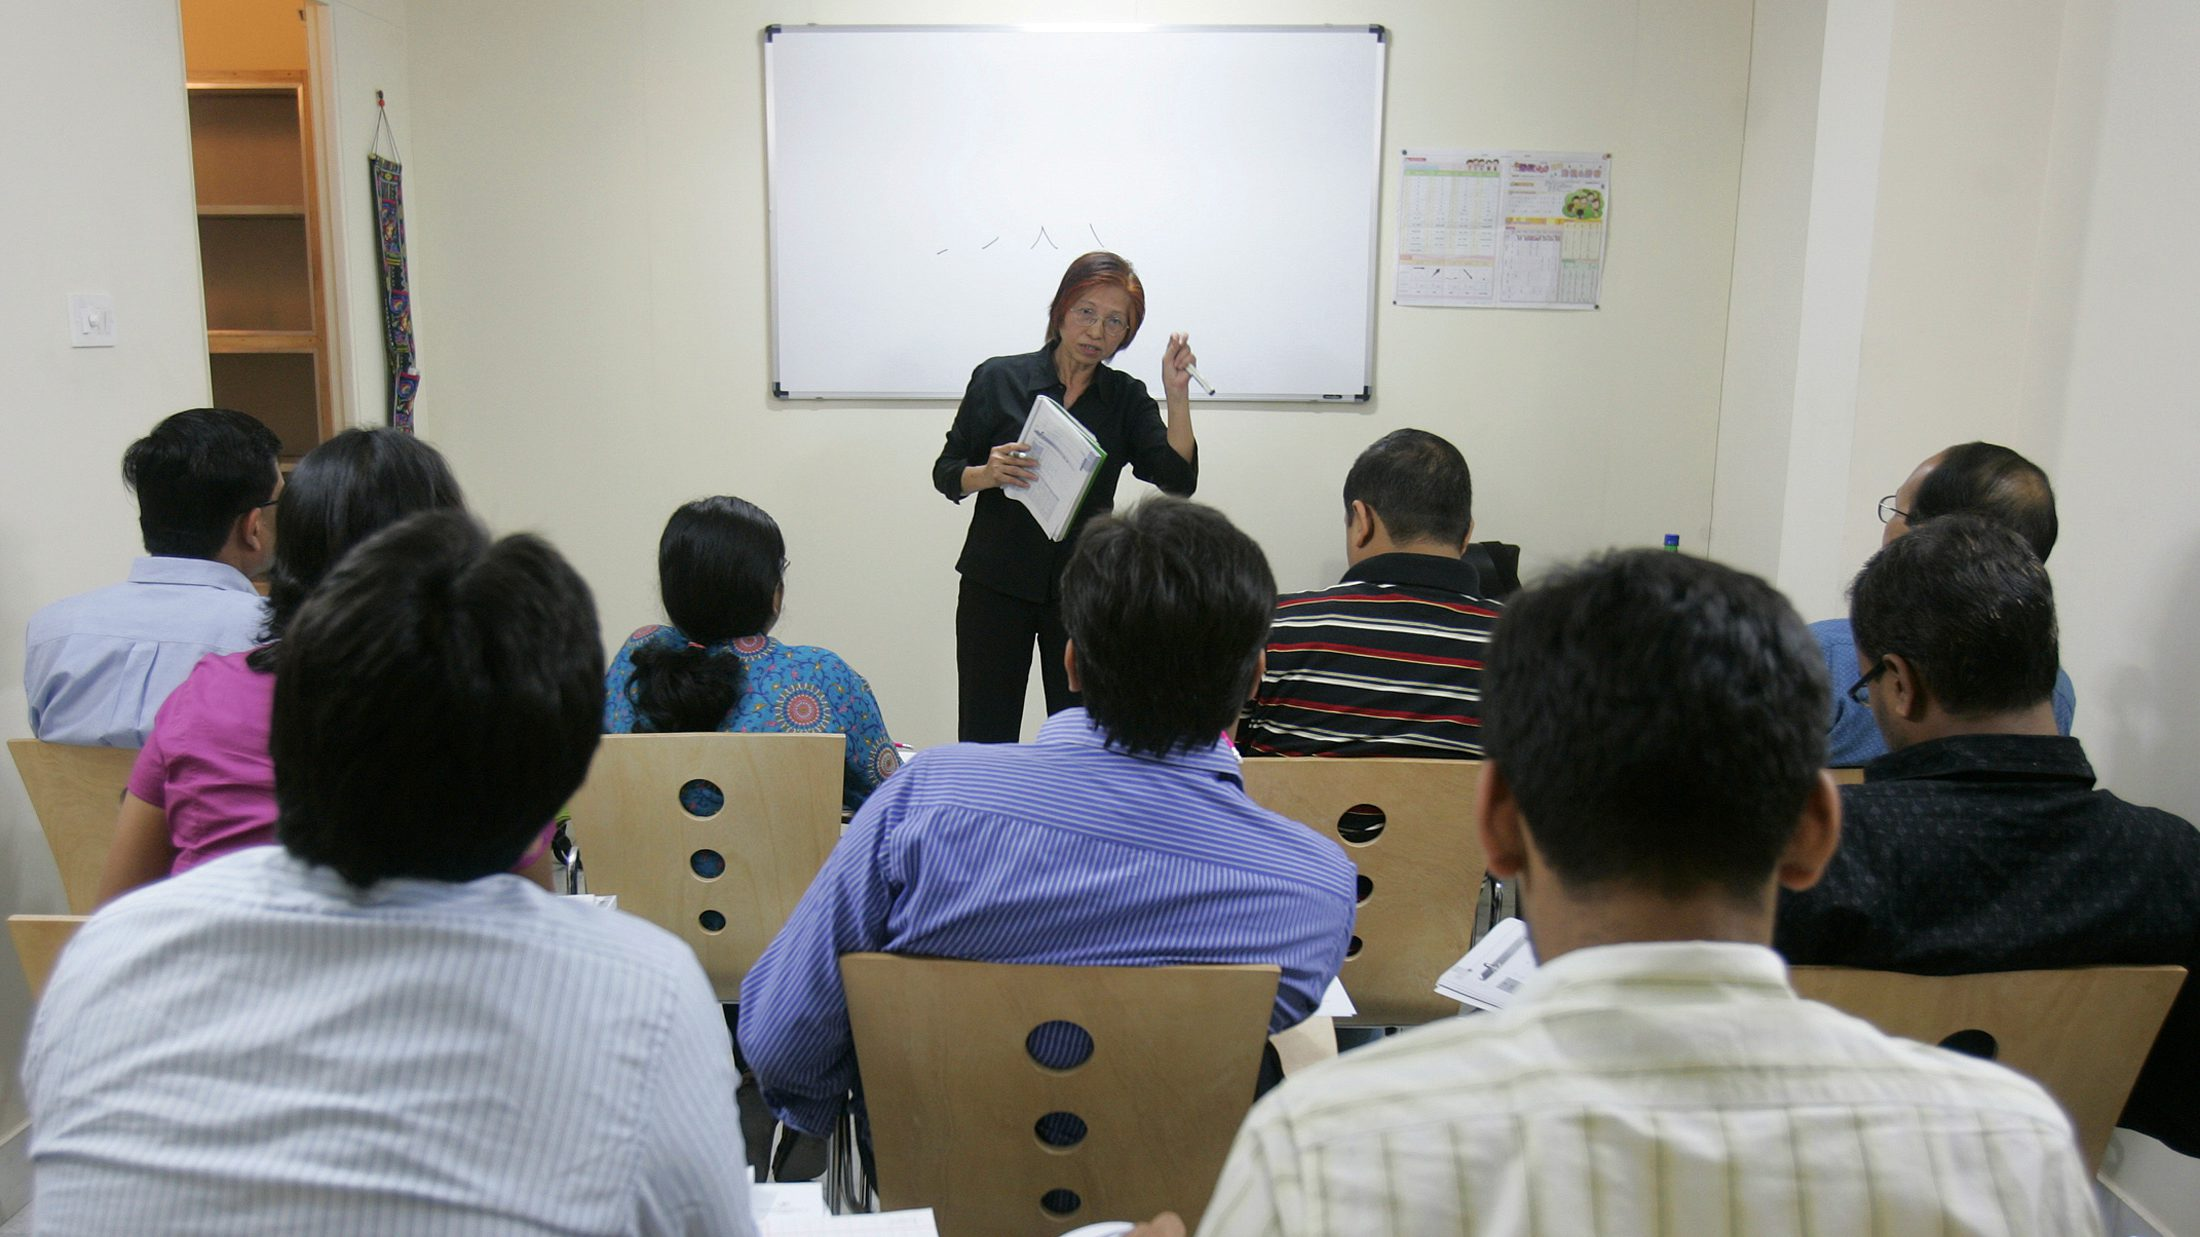 "A Chinese woman teaches the Chinese language to Indians at Zhong Wen Xue Xiao, the school of Chinese language in the eastern Indian city of Kolkata February 7, 2009. For the first time with the support of the Chinese consulate in Kolkata, a Chinese language school was set up last year followed by a monthly Chini Adda or Chinese Corner in January where both Chinese and non-Chinese people will gather to interact and promote cultural ties. Supported by the consulate, the Chini Adda is the brainchild of Madan Saraf, founder of the school of Chinese language. ""We hope to make the monthly gathering into a fortnightly affair."